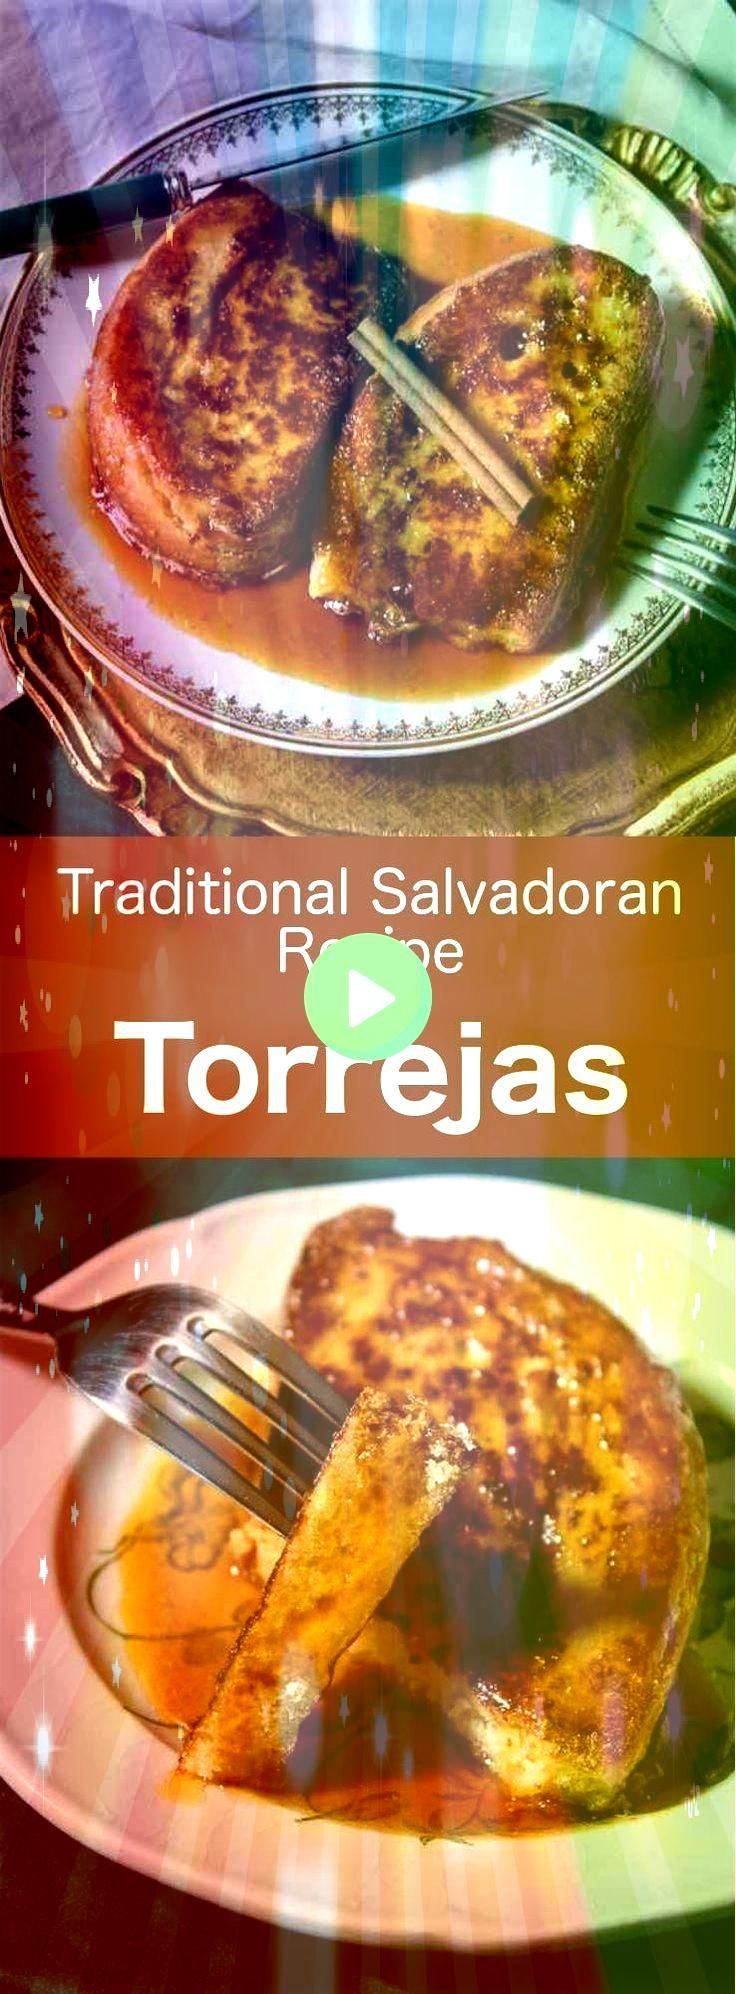 delicious Latin American version of the French toast They are   CENTRAL AMERICAN KITCHEN Torrejas are the delicious Latin American version of the French toast They are...